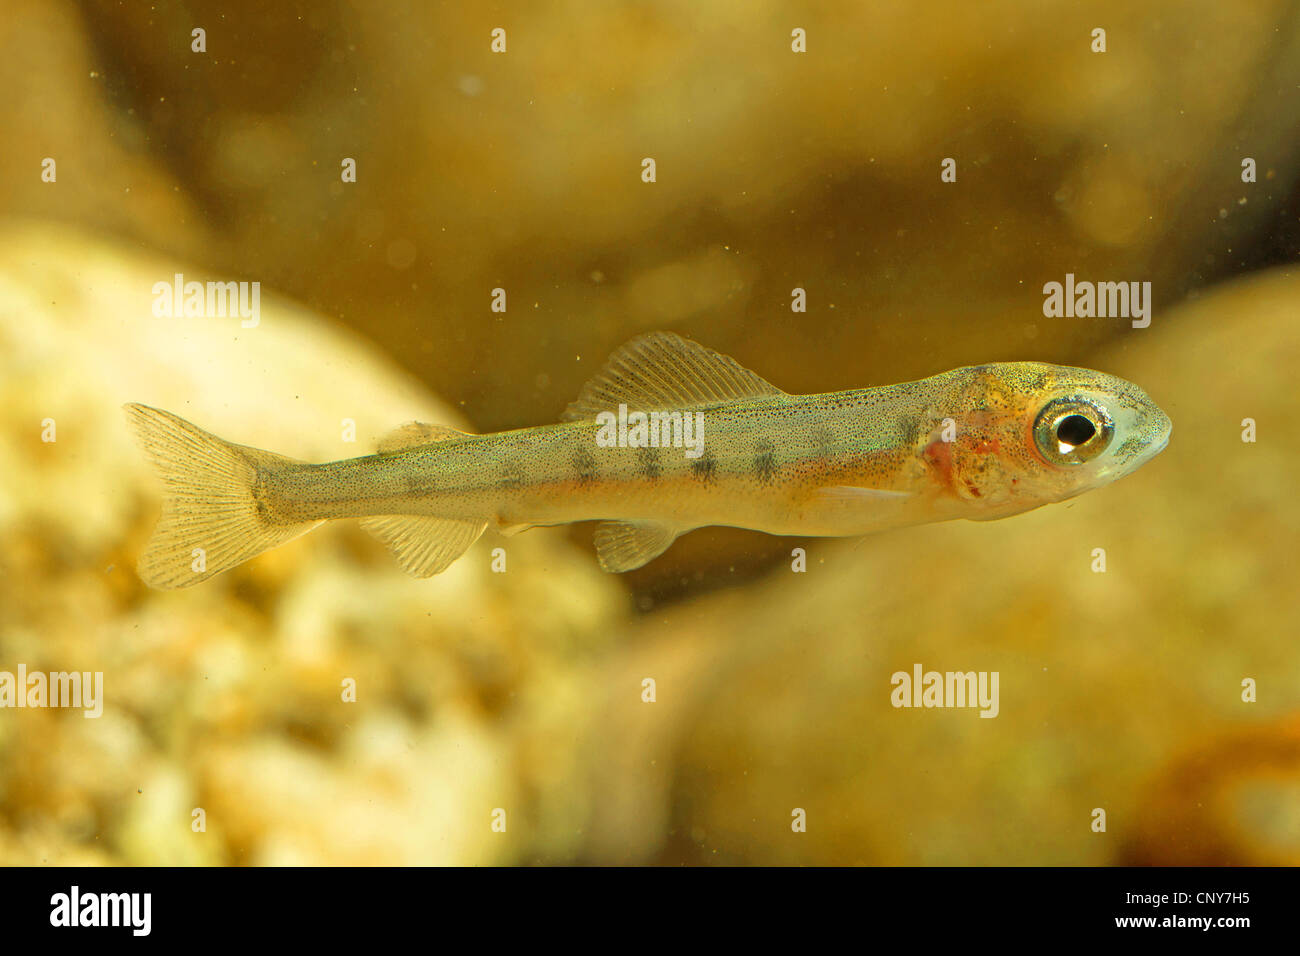 grayling (Thymallus thymallus), juvenile of 35 mm - Stock Image